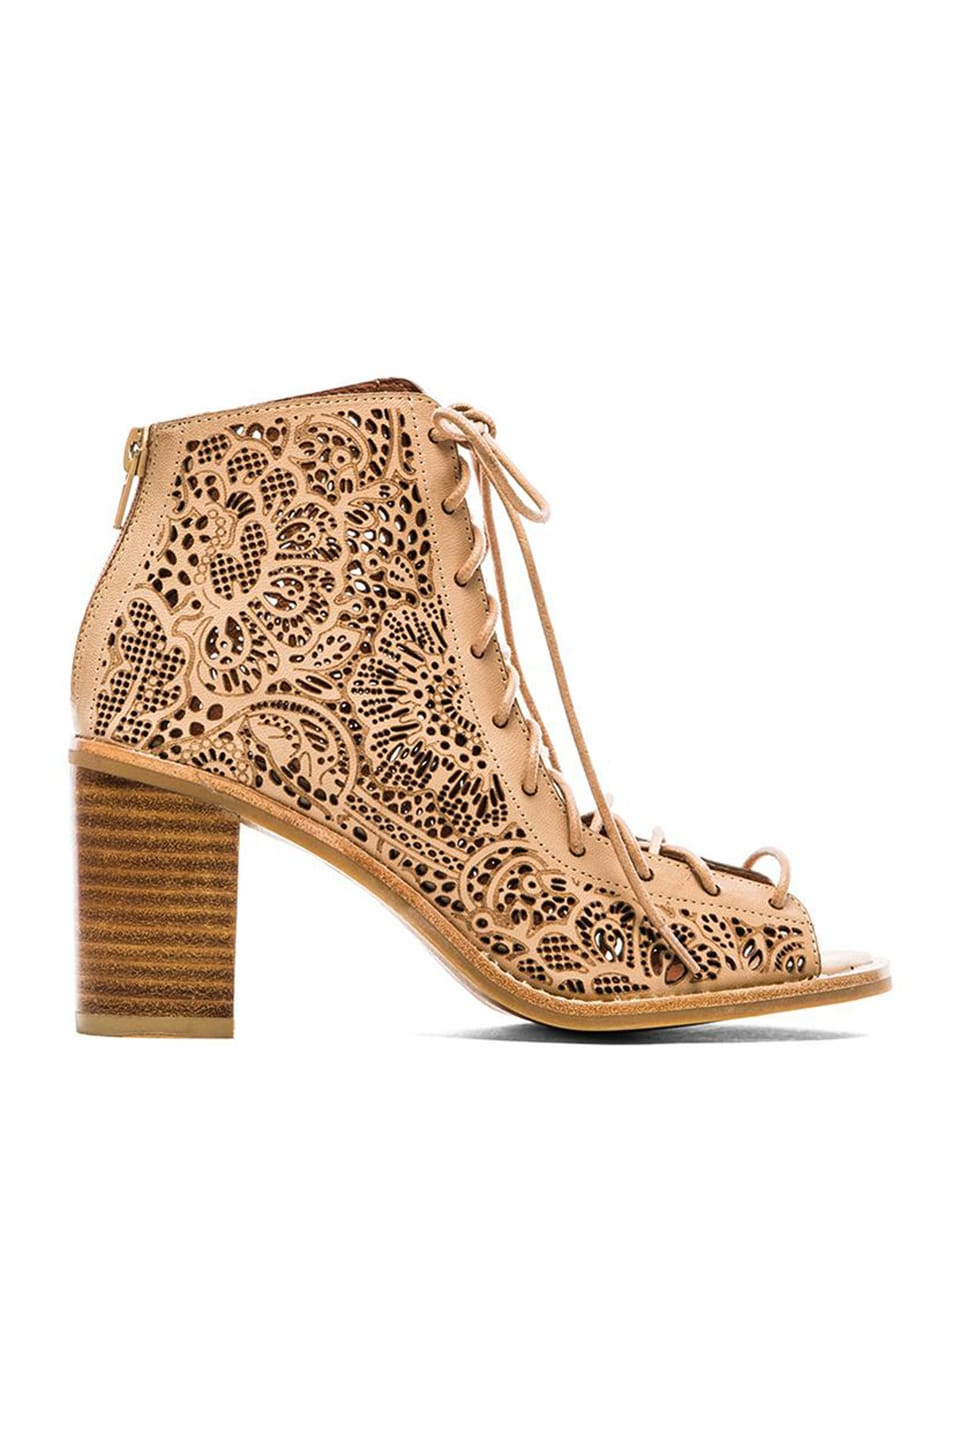 Jeffrey Campbell Cors Lace Up Sandal in Beige Bold Paisley Cut